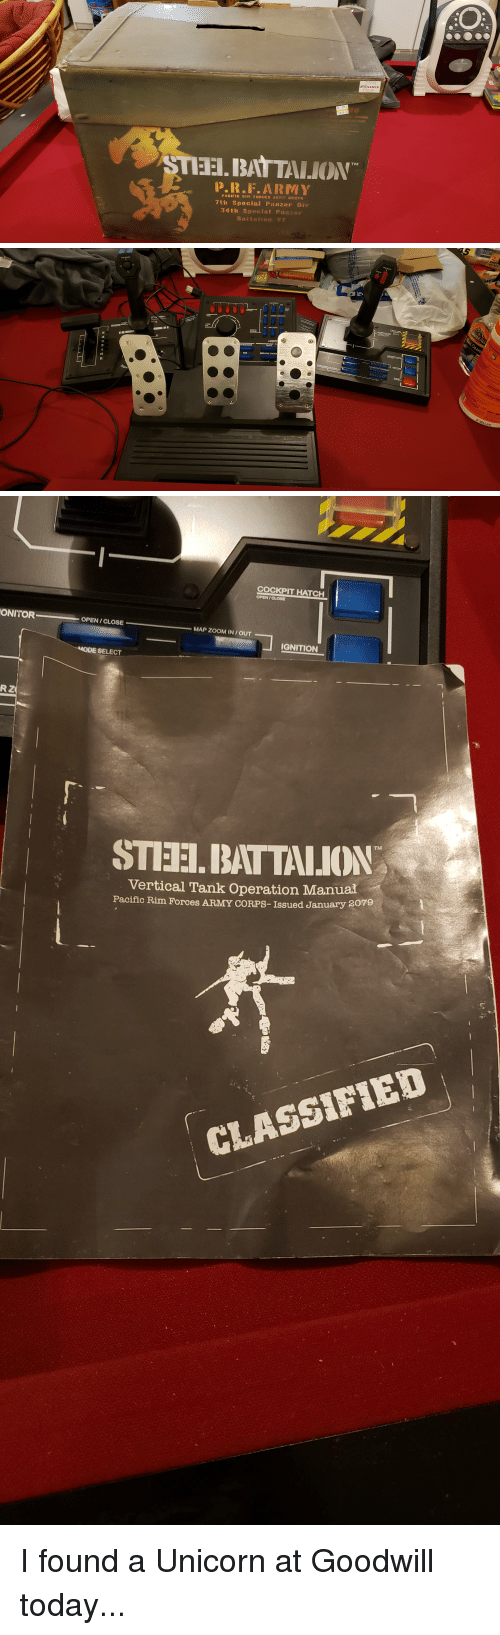 goodwill: EBGAMES  STEEI. BAT TALION  P.R.F.ARMY  PACIFIC RI FORCES ARMY CORPS  7th Special Panzer Div  34t:h Special Panzer  B a   AIGHT BLOC  5  CENT  3  SUB  MAGAZINE CHANG   COCKPIT HATCH  OPEN/CLOSE  ONITOR  OPEN/CLOSE  MAP ZOOM IN/OUT  IGNITION  SELECT  STIEH.BATTALION  Vertical Tank Operation Manual  Pacific Rim Forces ARMY CORPS-Issued January  2079  翥.  CLASSIFIED I found a Unicorn at Goodwill today...